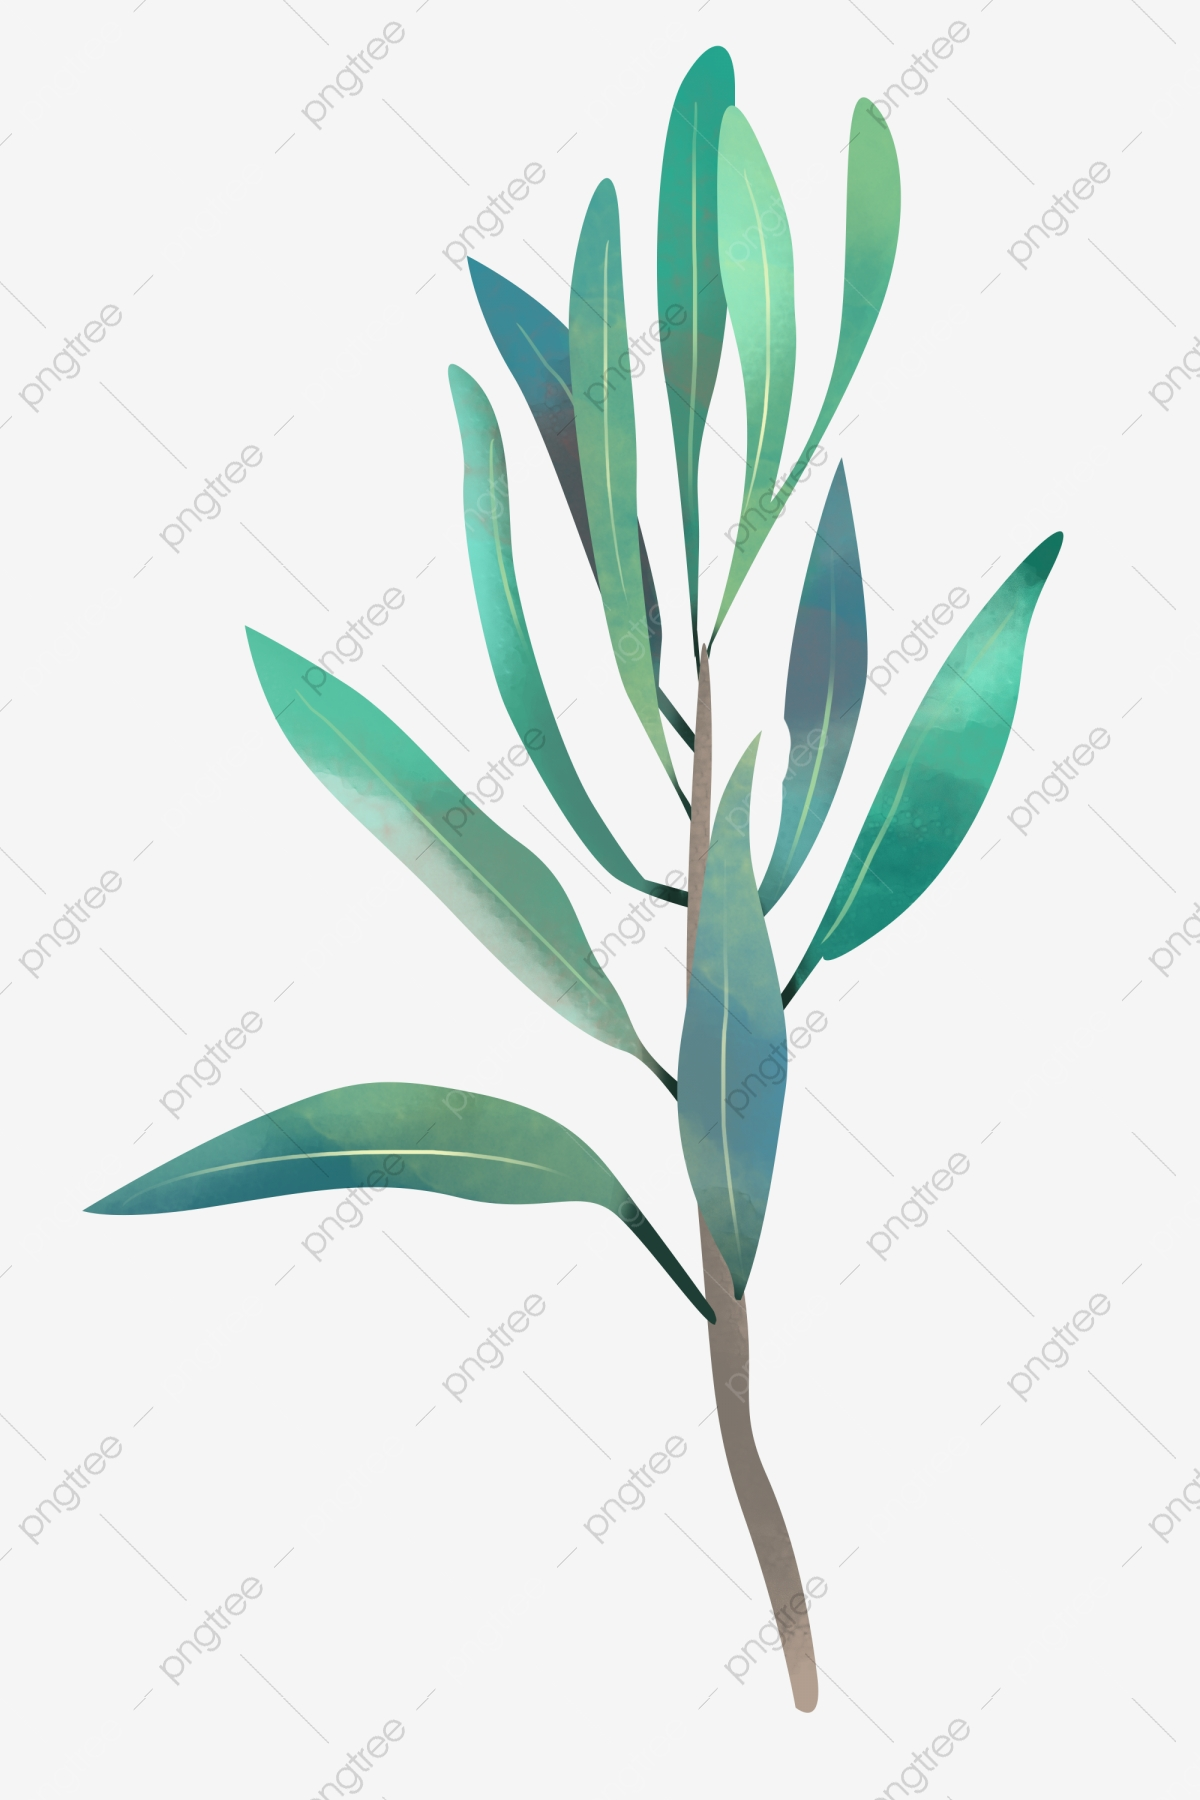 Indoor Plant Png - Indoor Flower Plant Png , Free Transparent Clipart -  ClipartKey